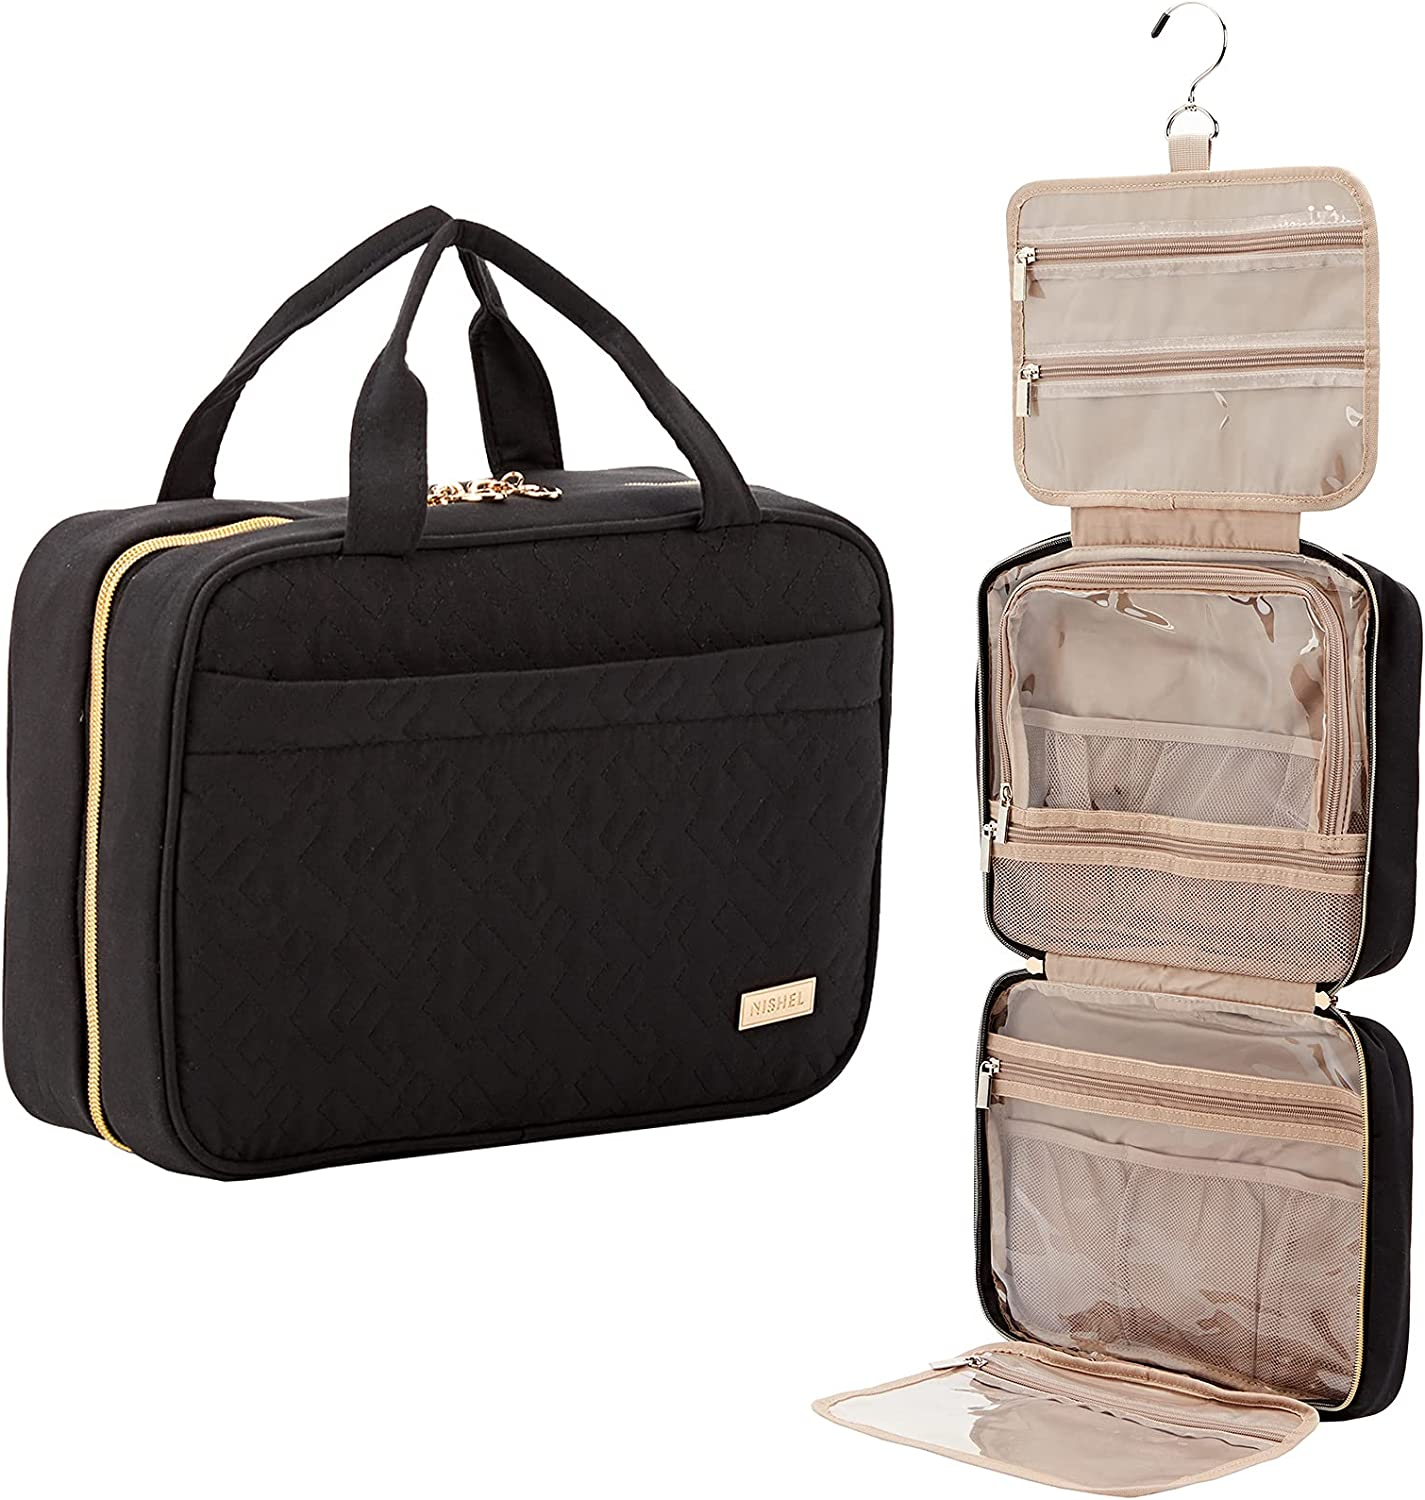 NISHEL Large Hanging Travel Toiletry Bag, Portable Makeup Organizer, Water Resistant Cosmetic Holder for Brushes Set, Full-Sized Shampoo, Conditioner, Accessories, Black